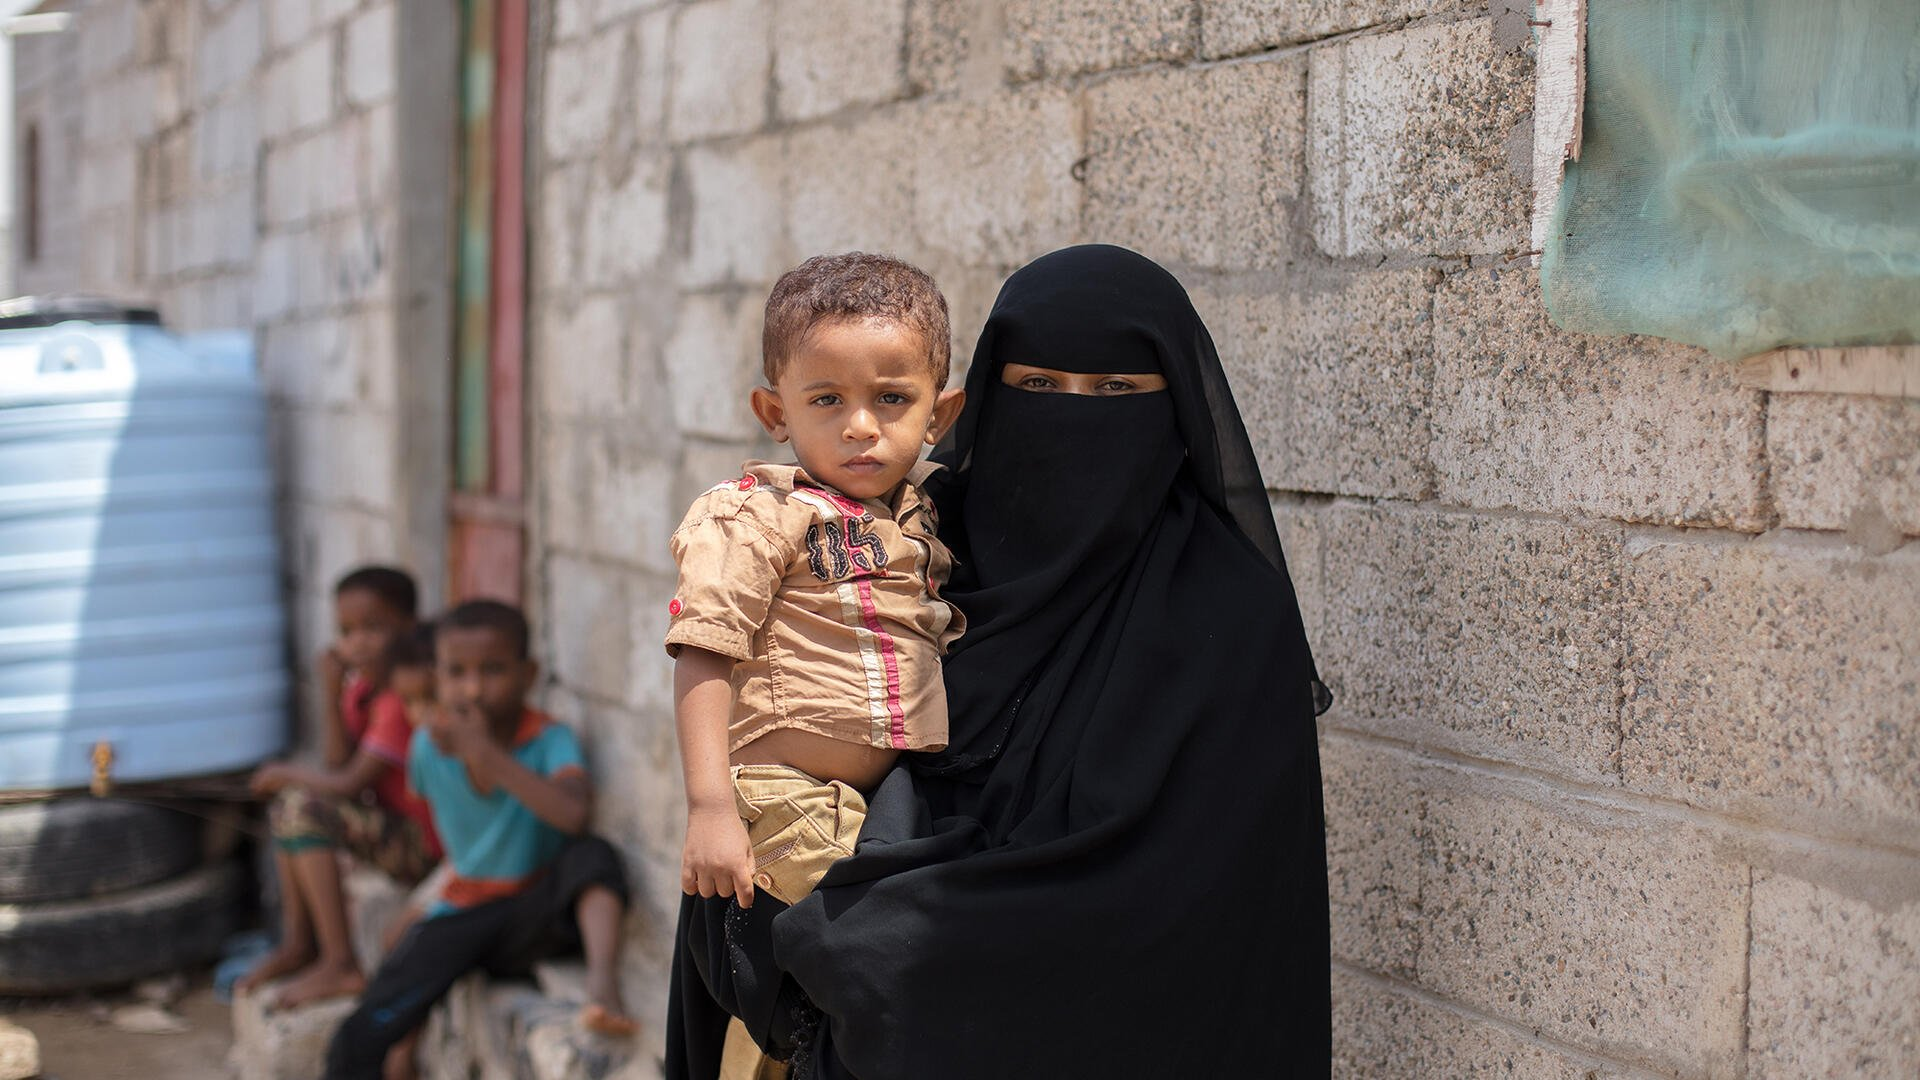 A Yemeni mother holds her young son.